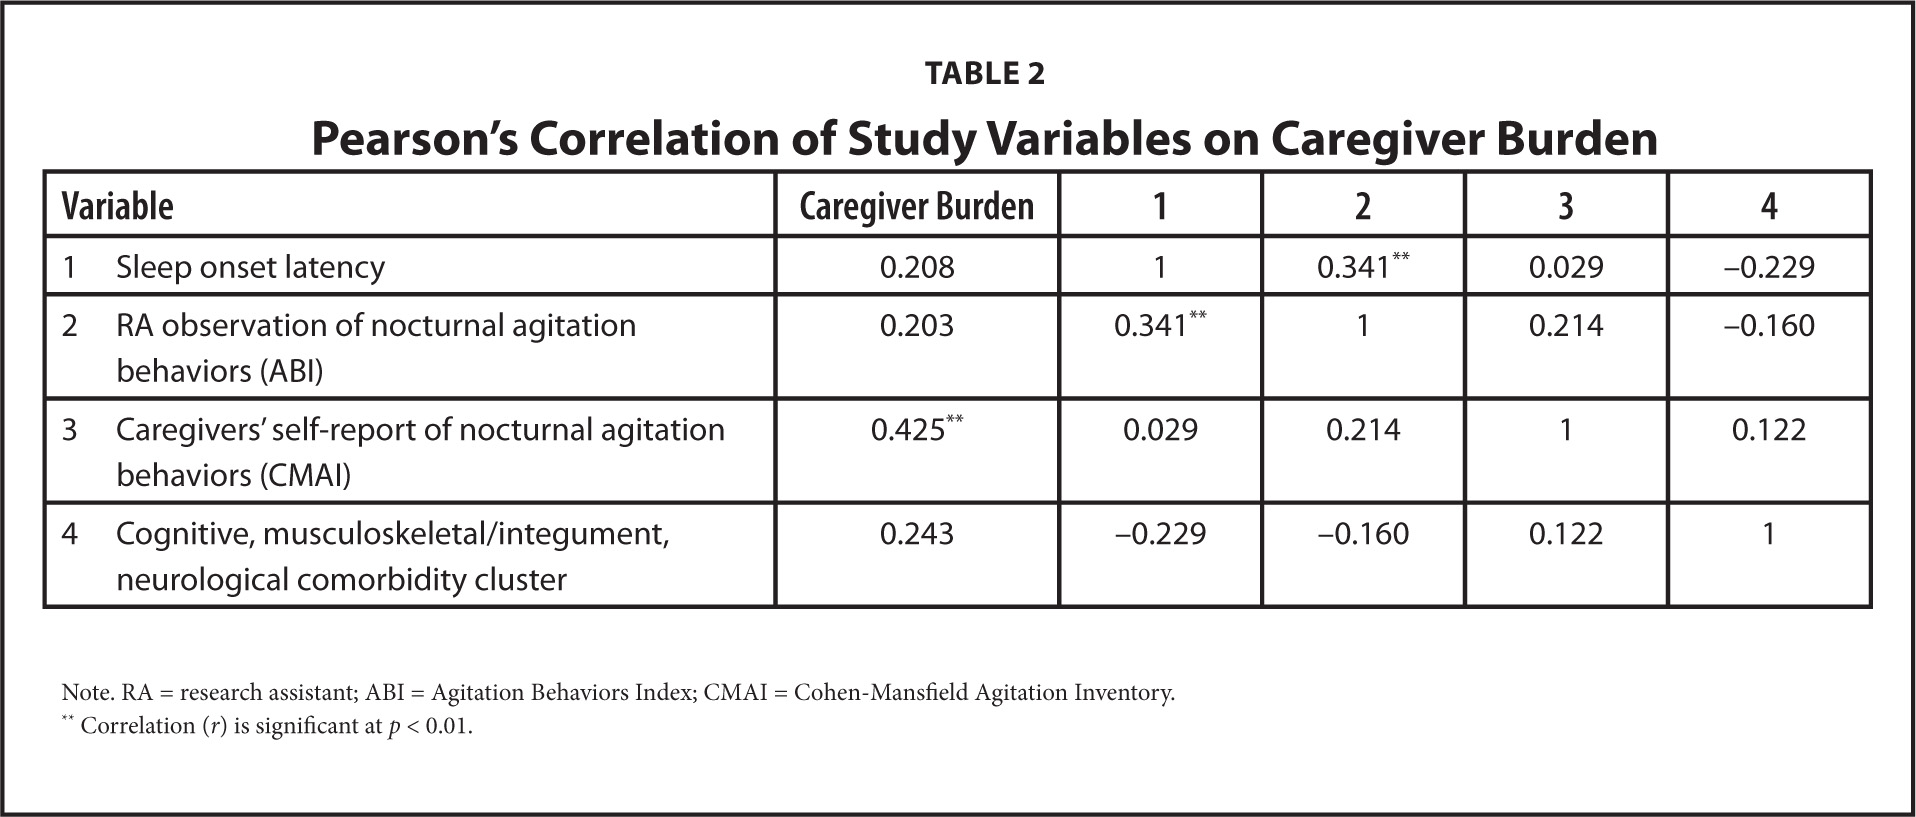 Pearson's Correlation of Study Variables on Caregiver Burden